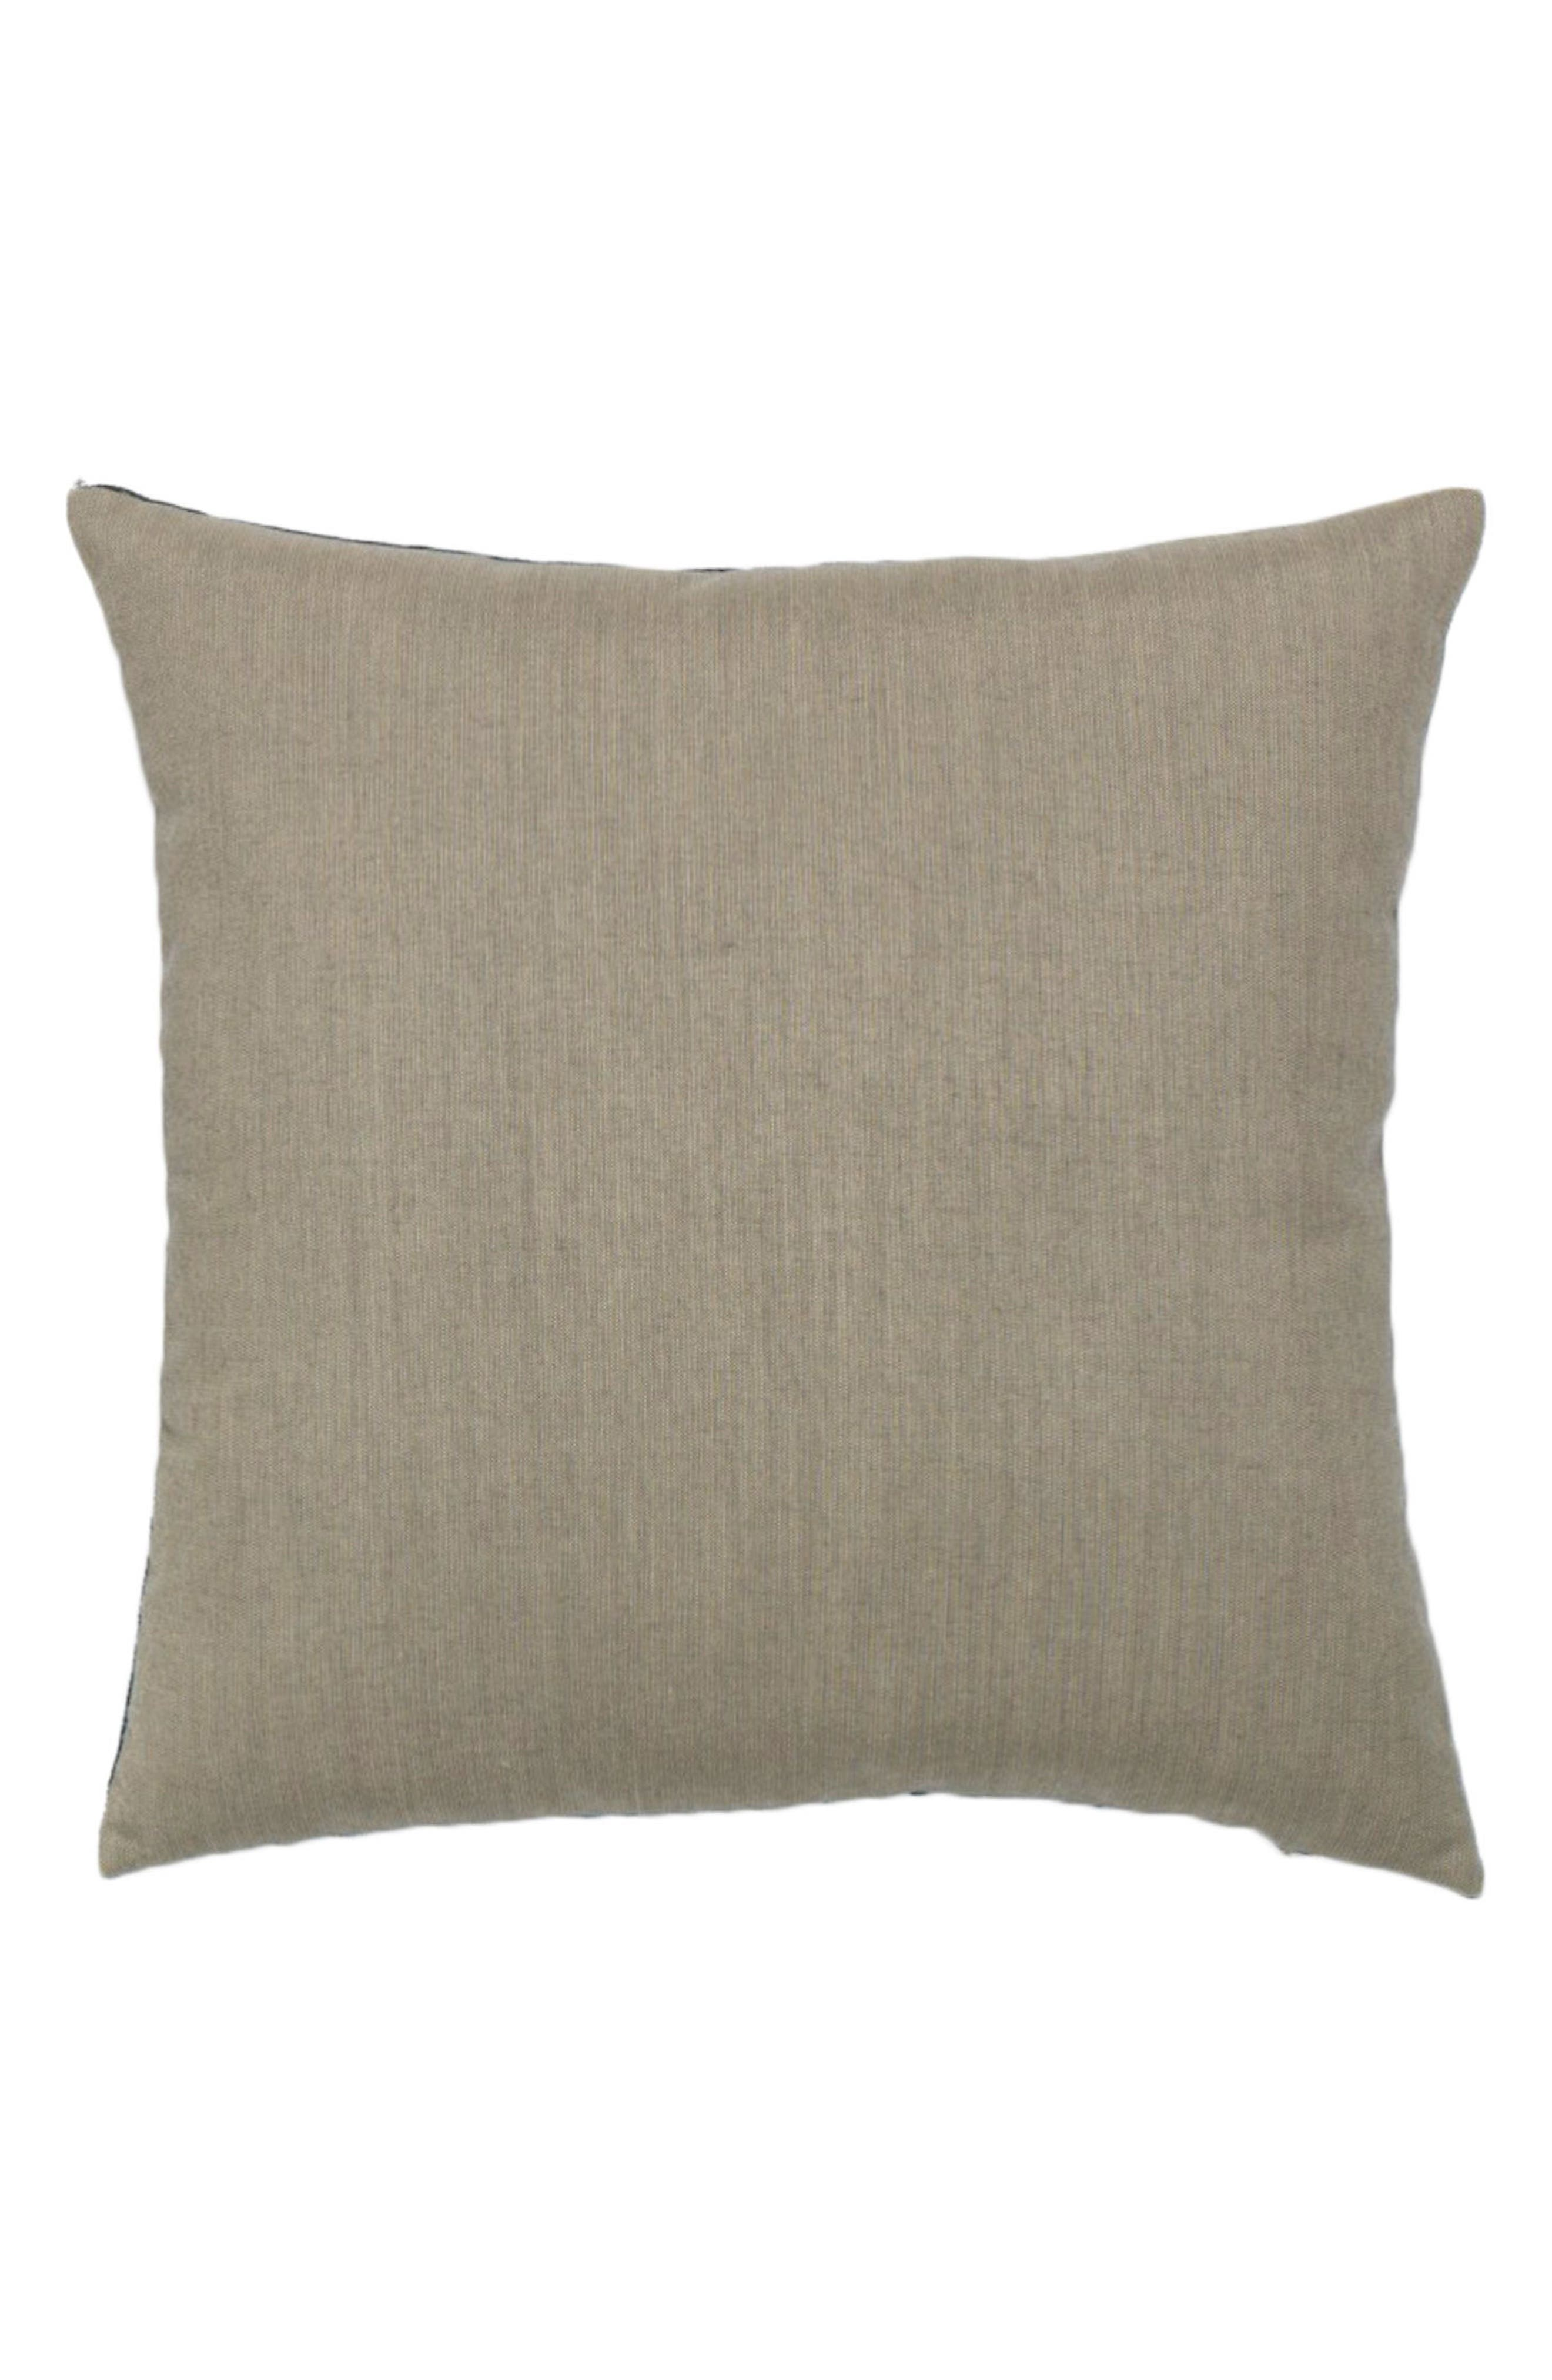 Divergence Indigo Indoor/Outdoor Accent Pillow,                             Alternate thumbnail 2, color,                             400